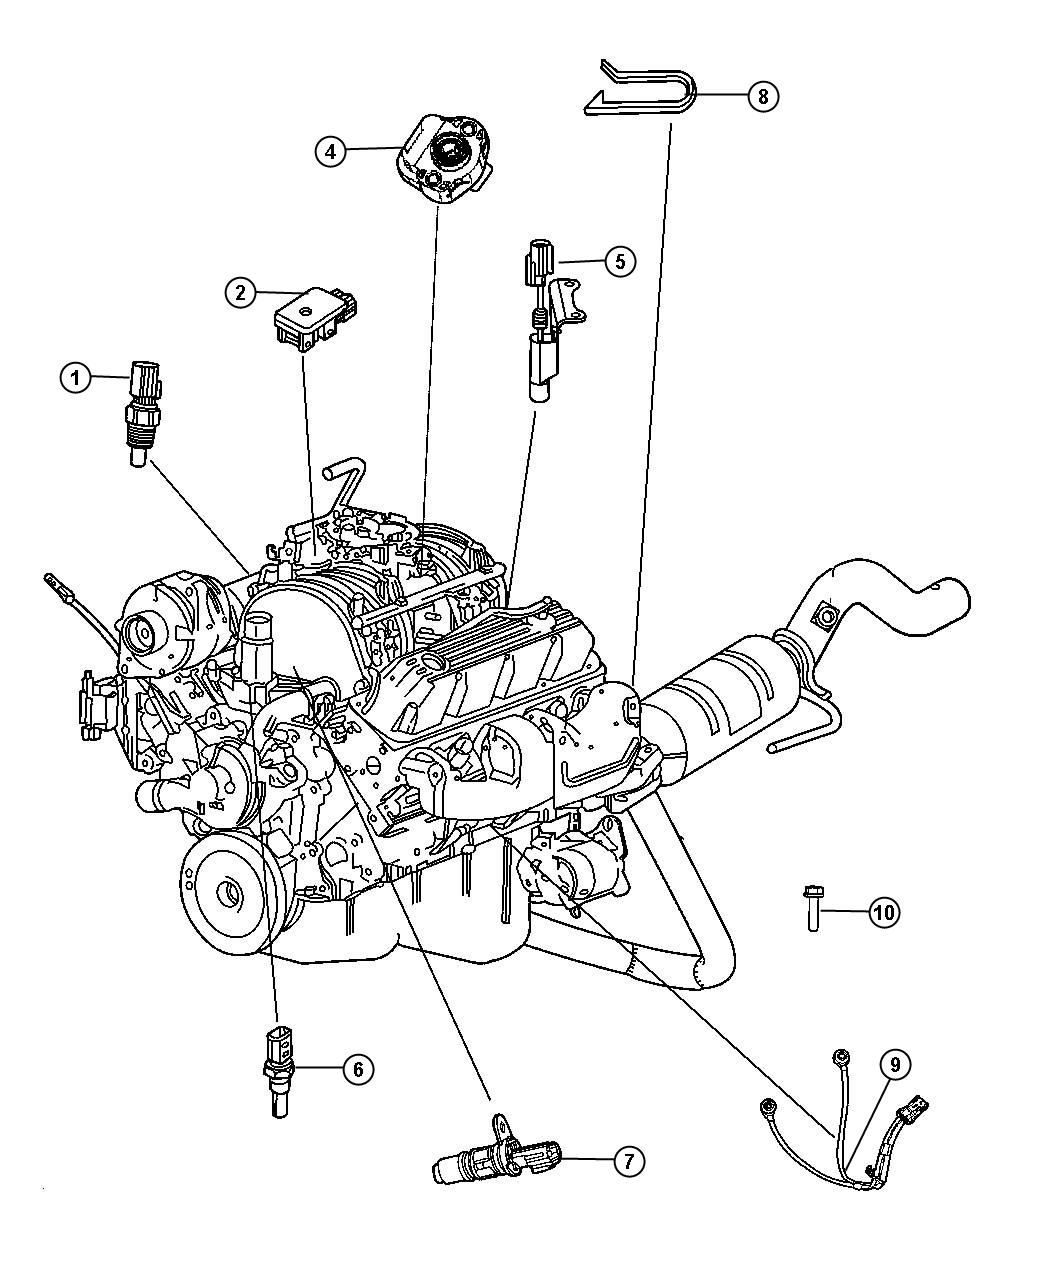 Chrysler 200 2 4 Liter Engine Diagram further P 0996b43f81b3c632 moreover Mitsubishi 1 6l Engine additionally Chrysler Town And Country Engine Diagram Oil Filter further 5krqi Need Diagram Kia Sedona 2007 Serpentine Belt. on dodge caliber serpentine belt diagram